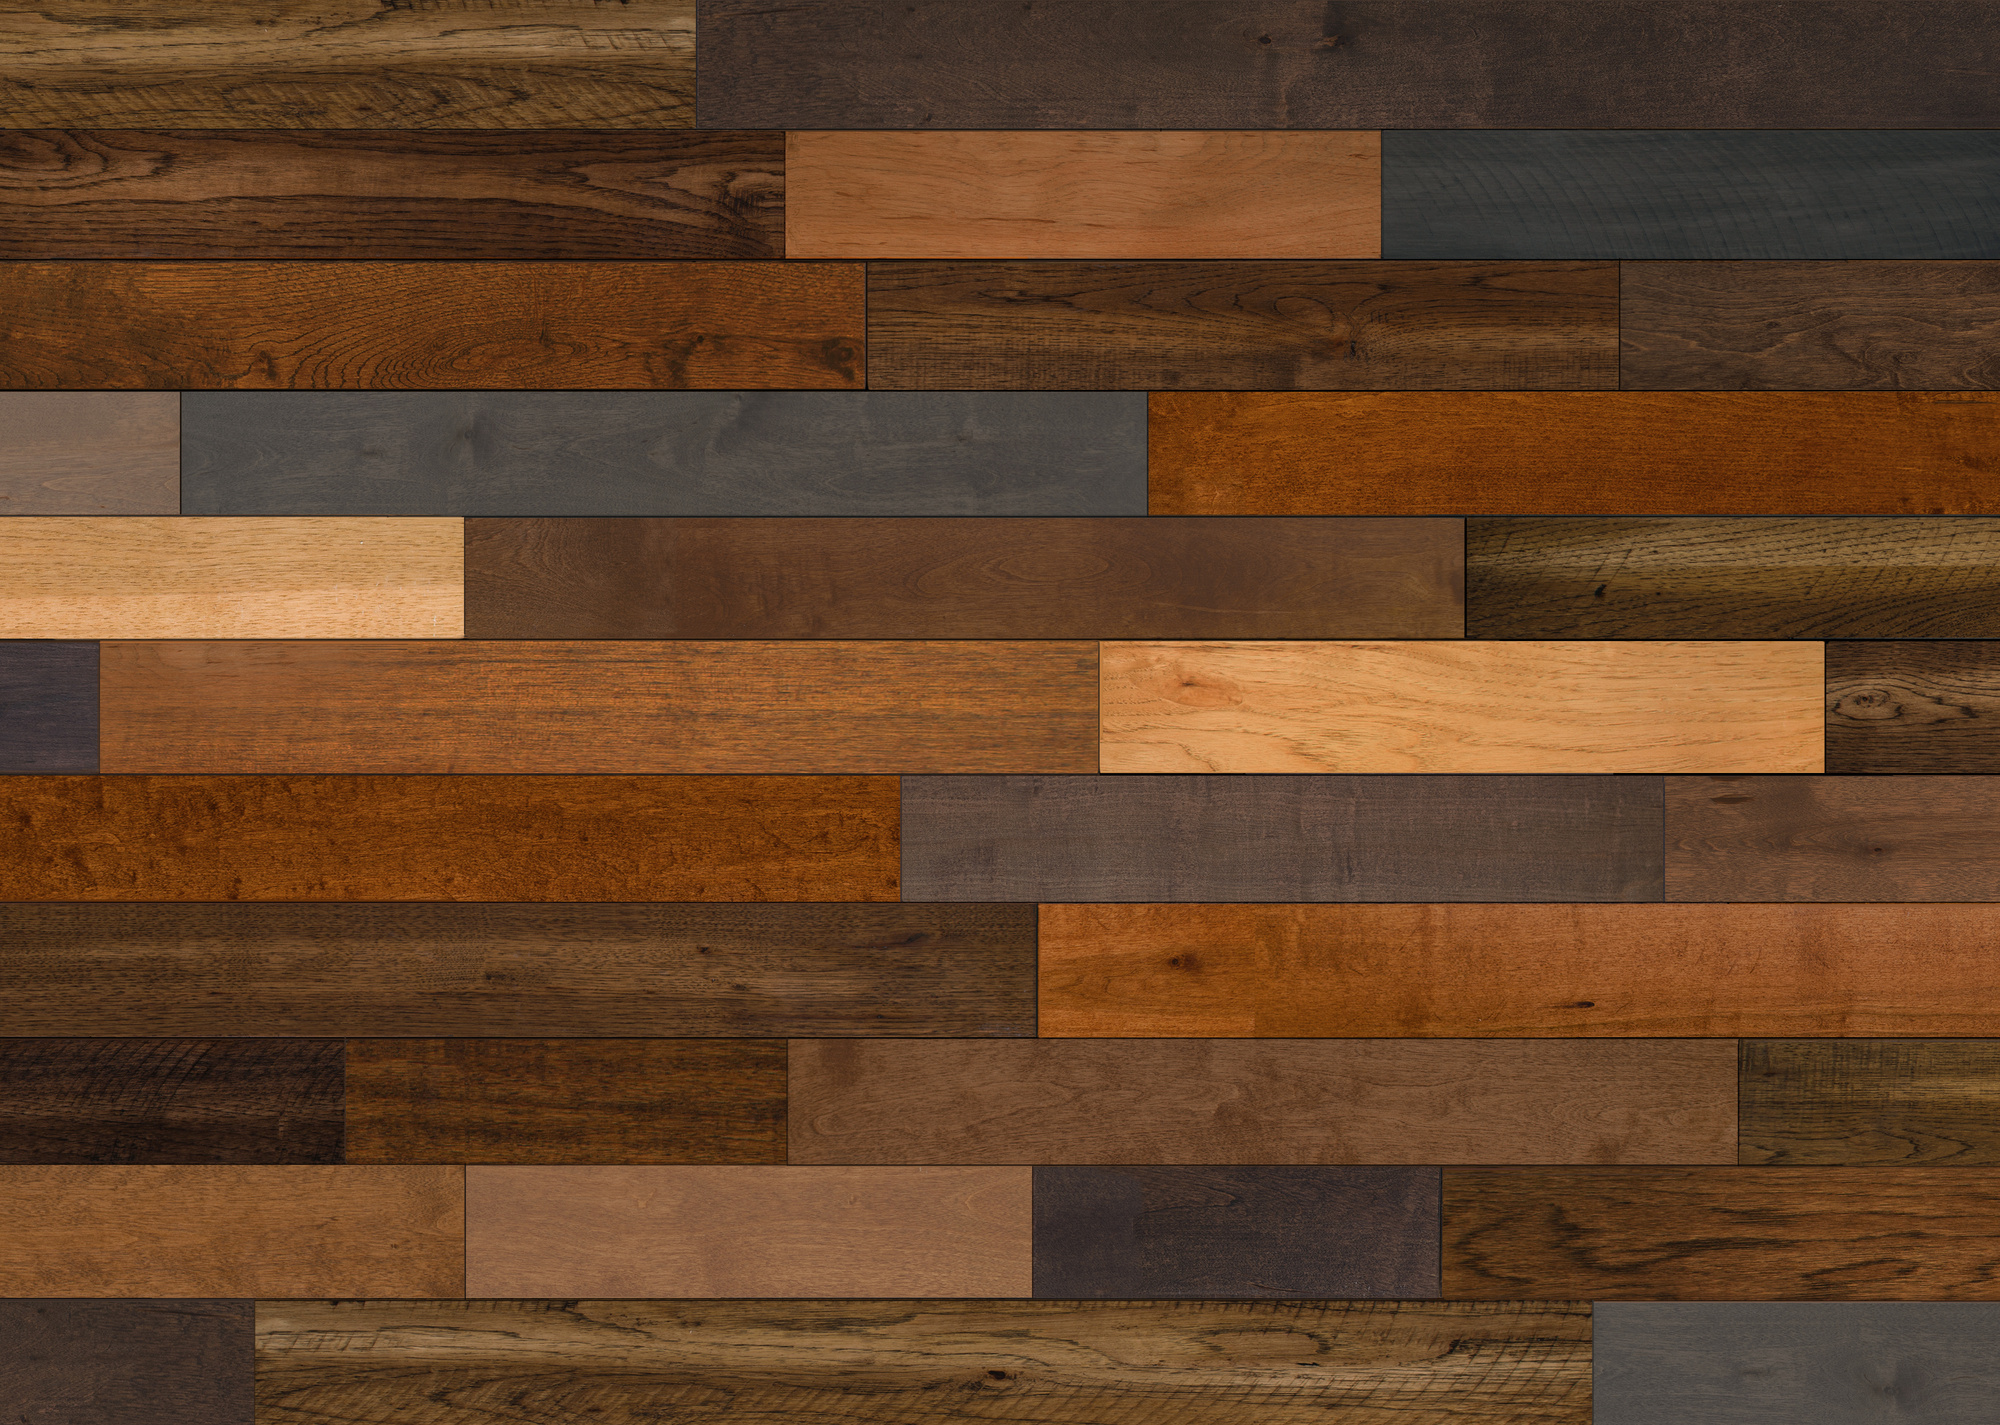 mixed species wood flooring pattern for background texture